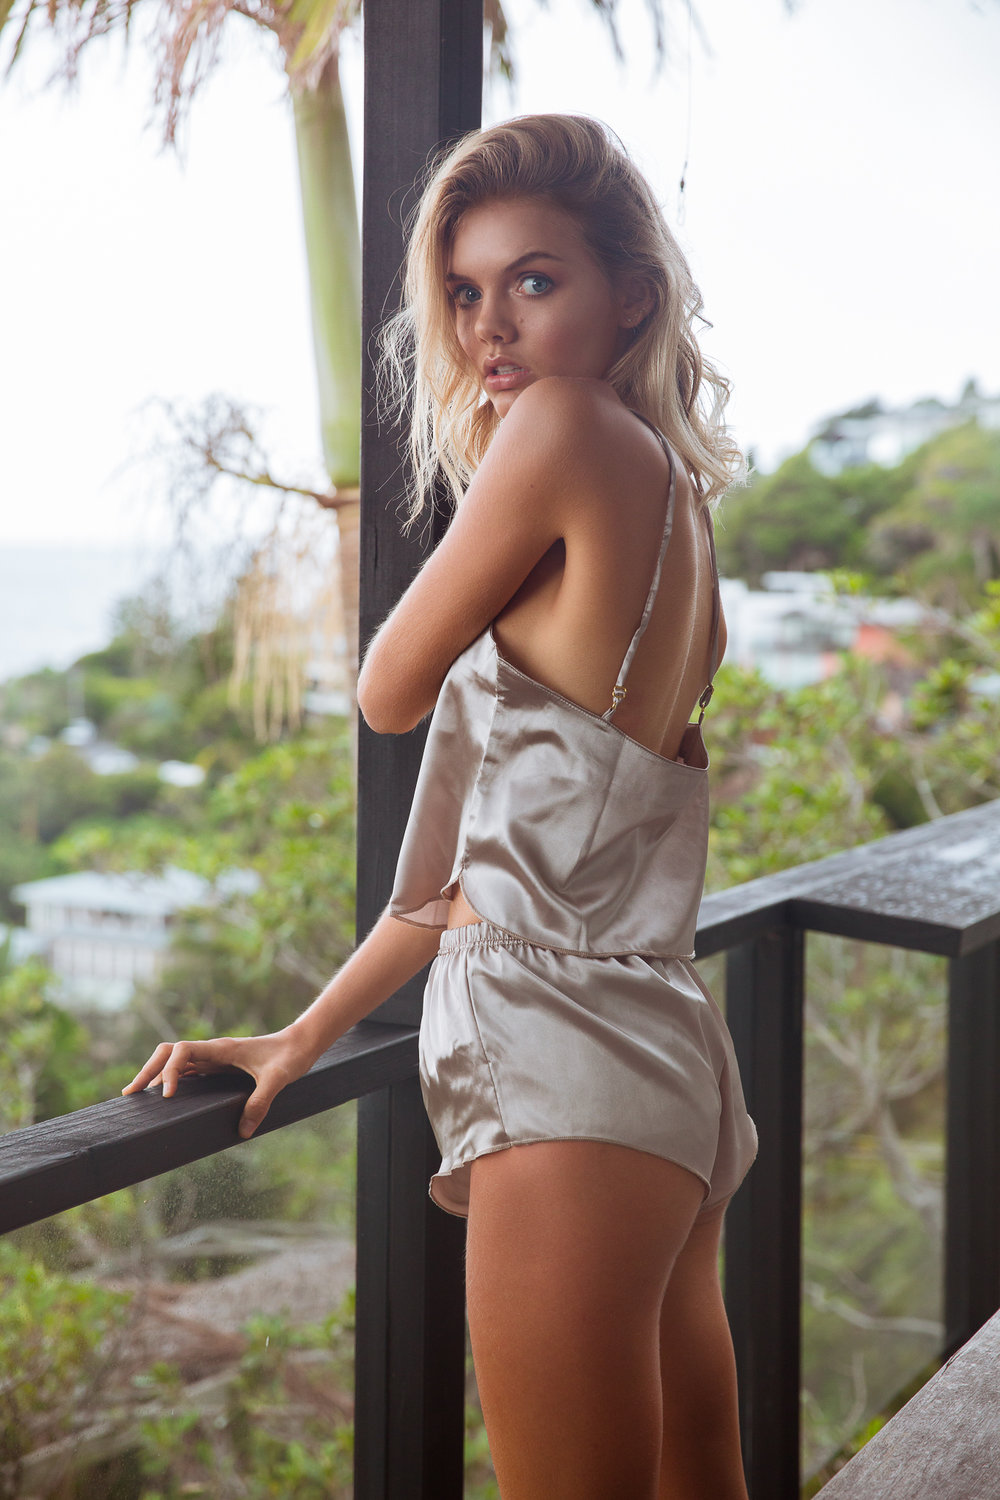 Bronte Blampied by Chris Dwyer